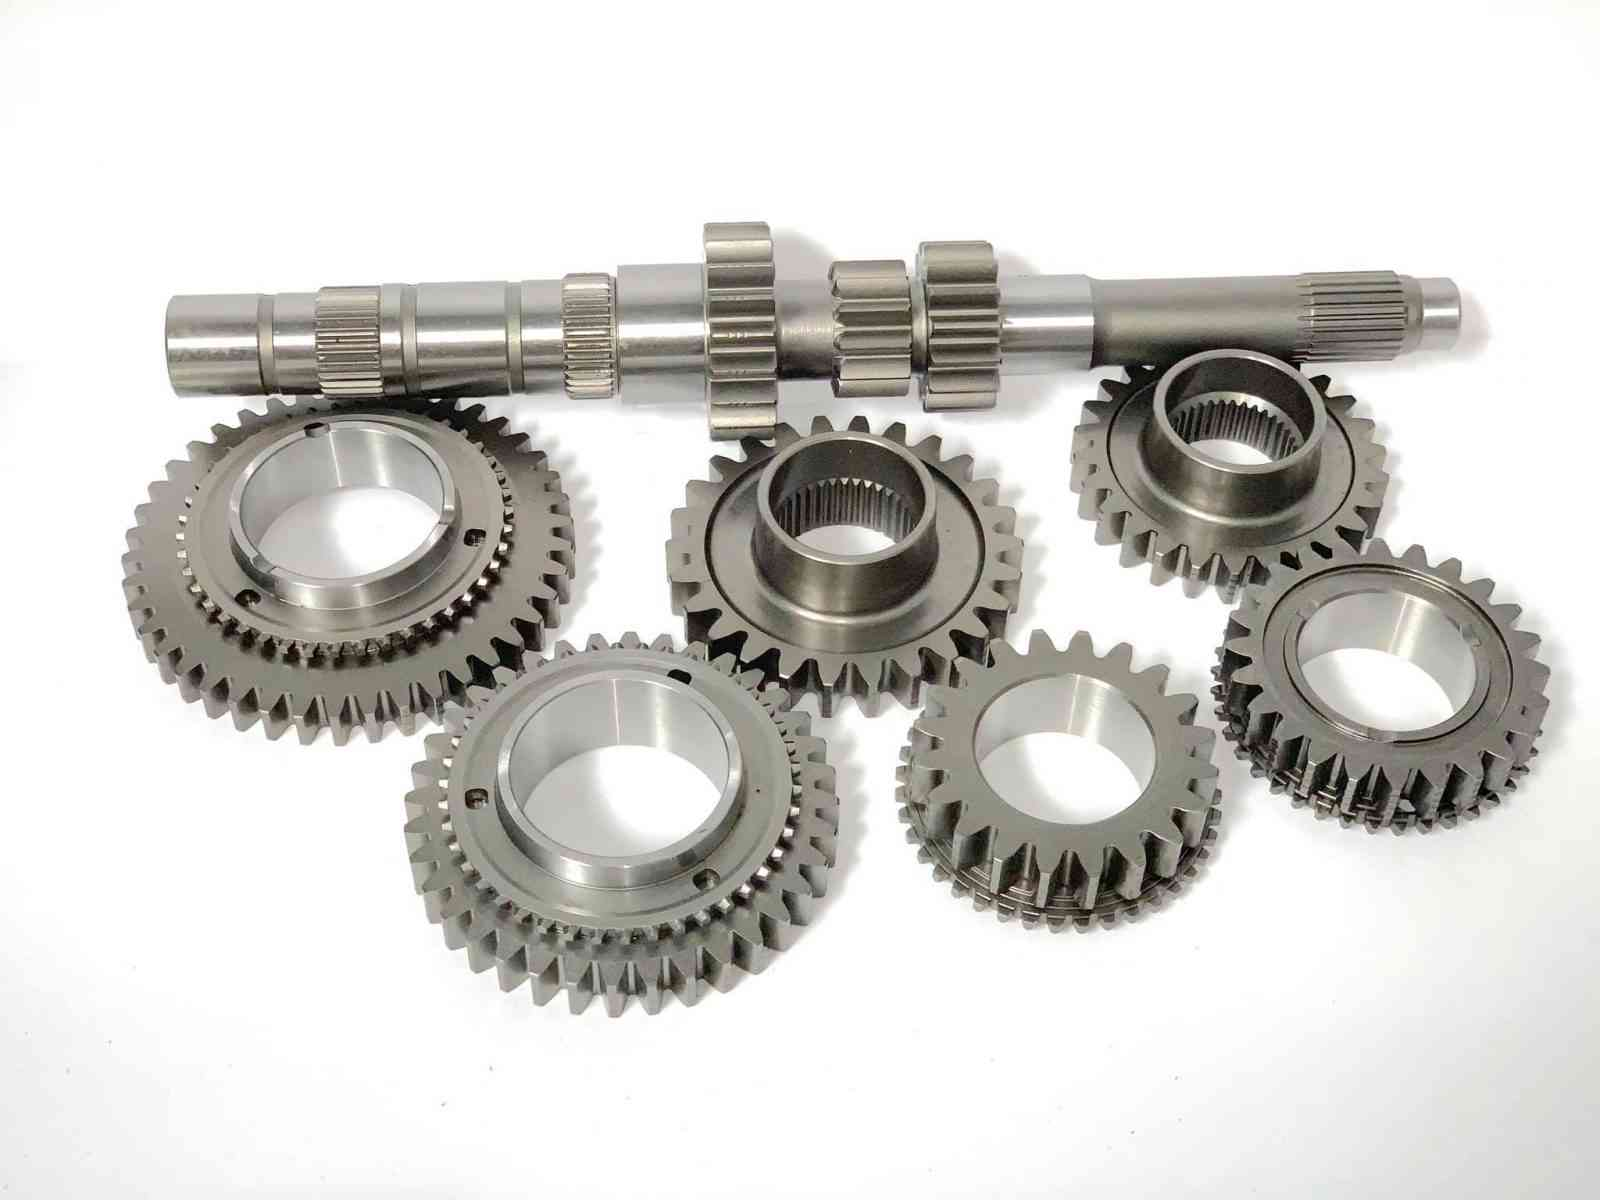 straight cut gears- explained here for you